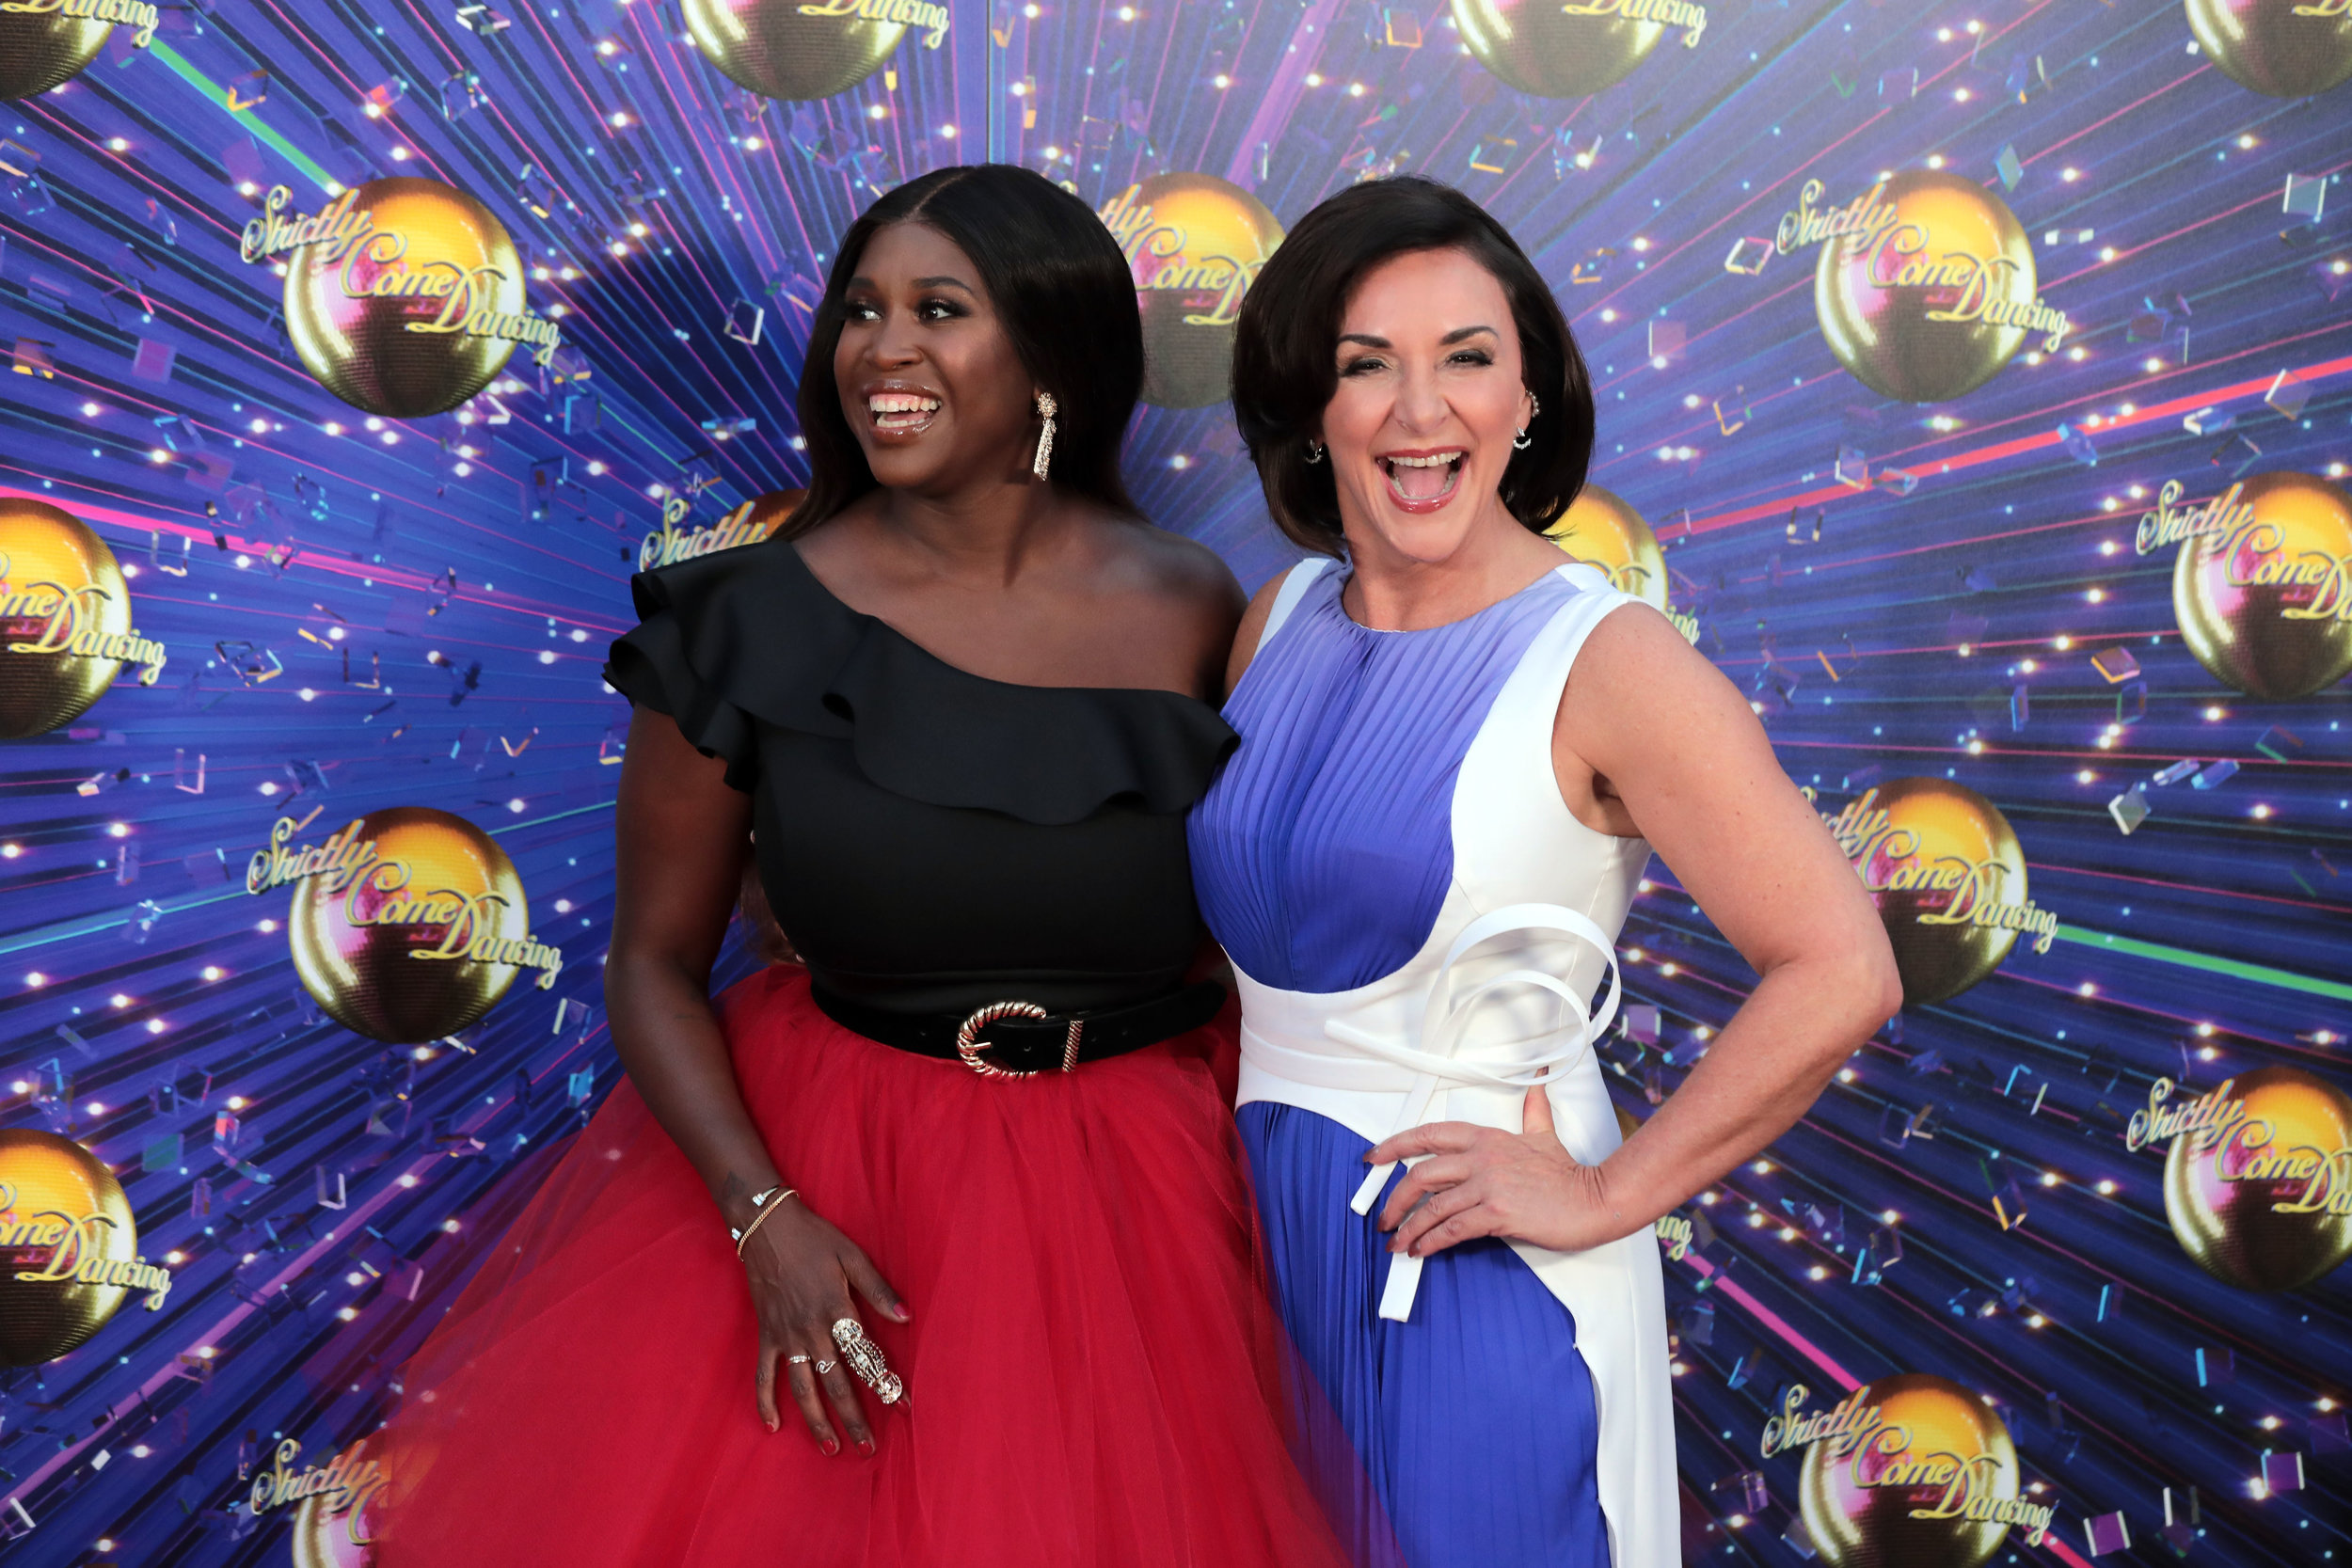 PHT_B5327_STRICTLY_COME_DANCING_LAUNCH_125750.JPG